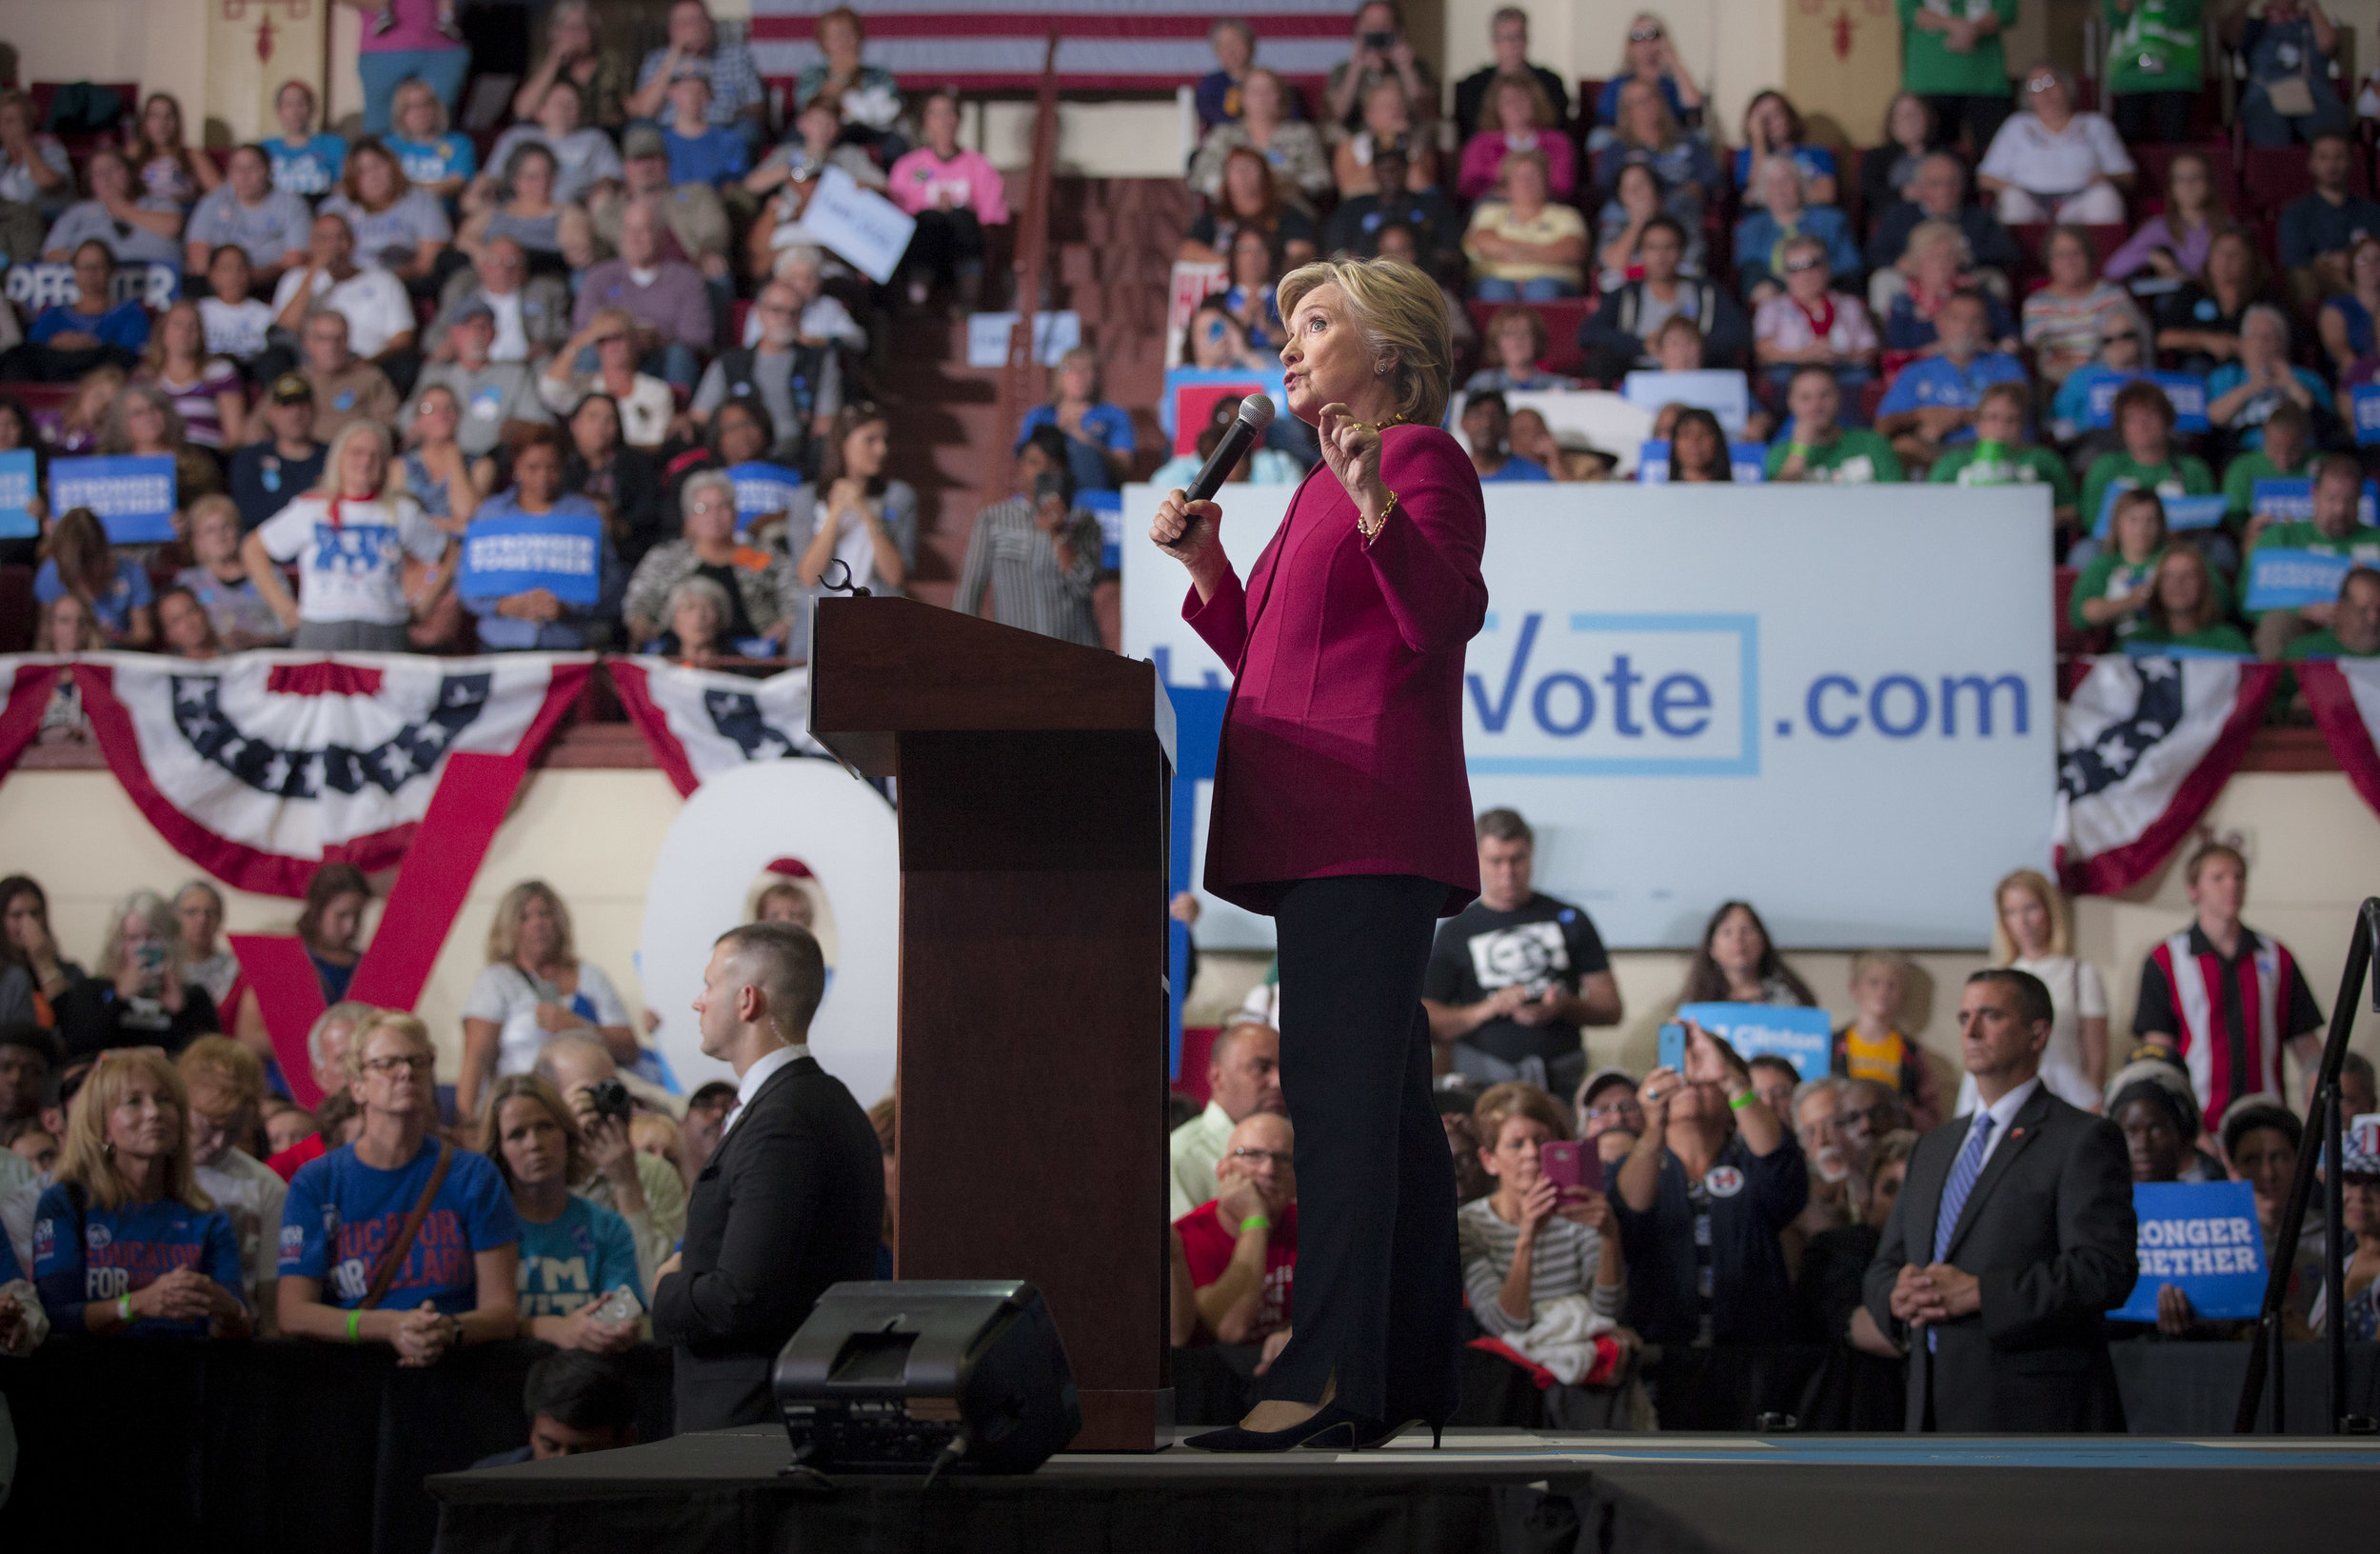 10042016_BJM_Hillary_Clinton_Campaigns_in_Harrisburg_Pennsylvania_14.jpg